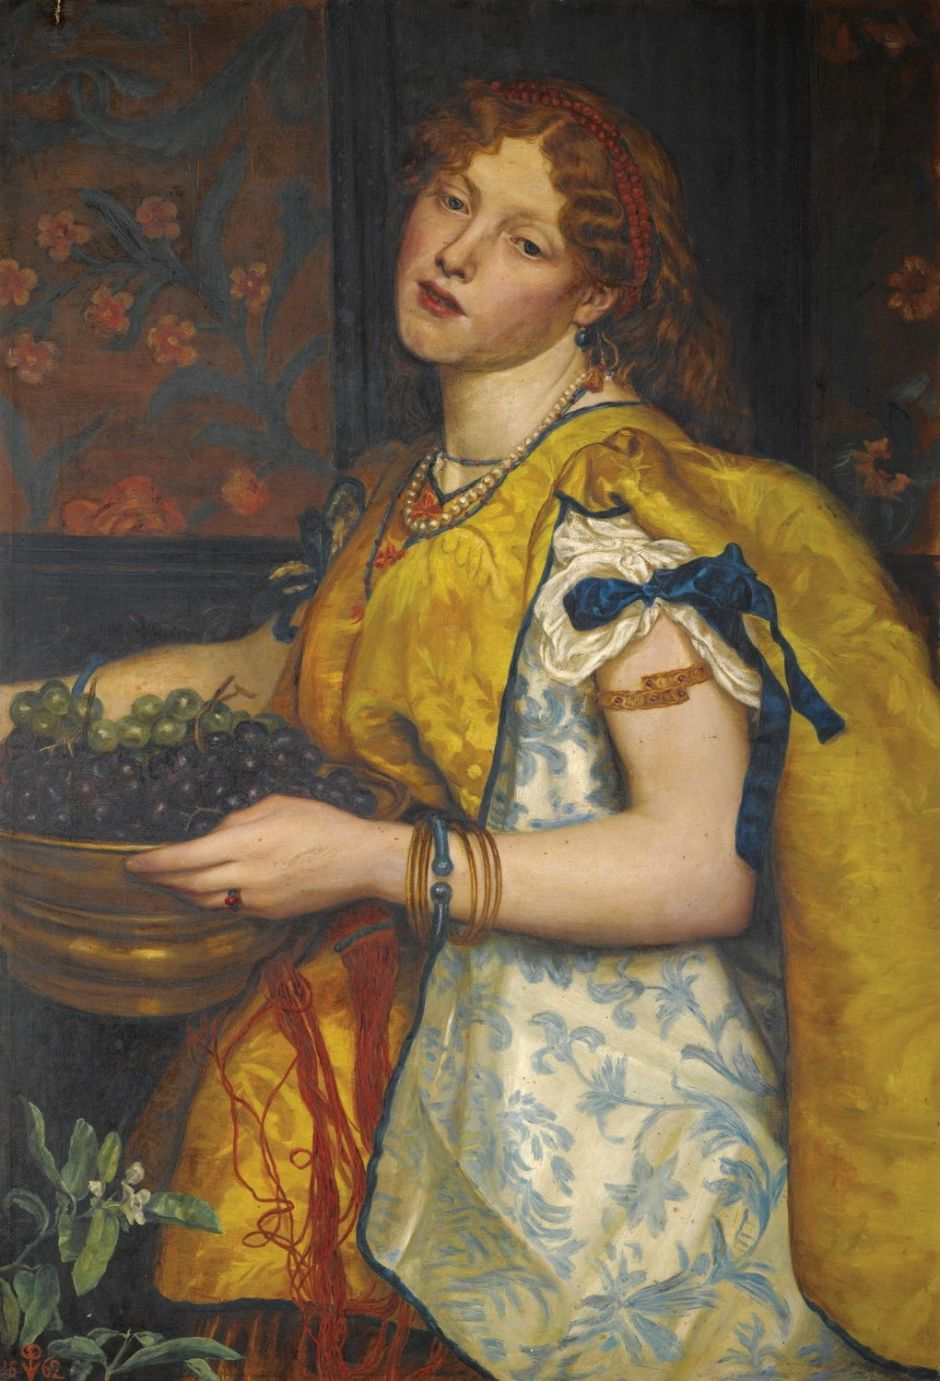 prinsepgirlcarryinggrapes